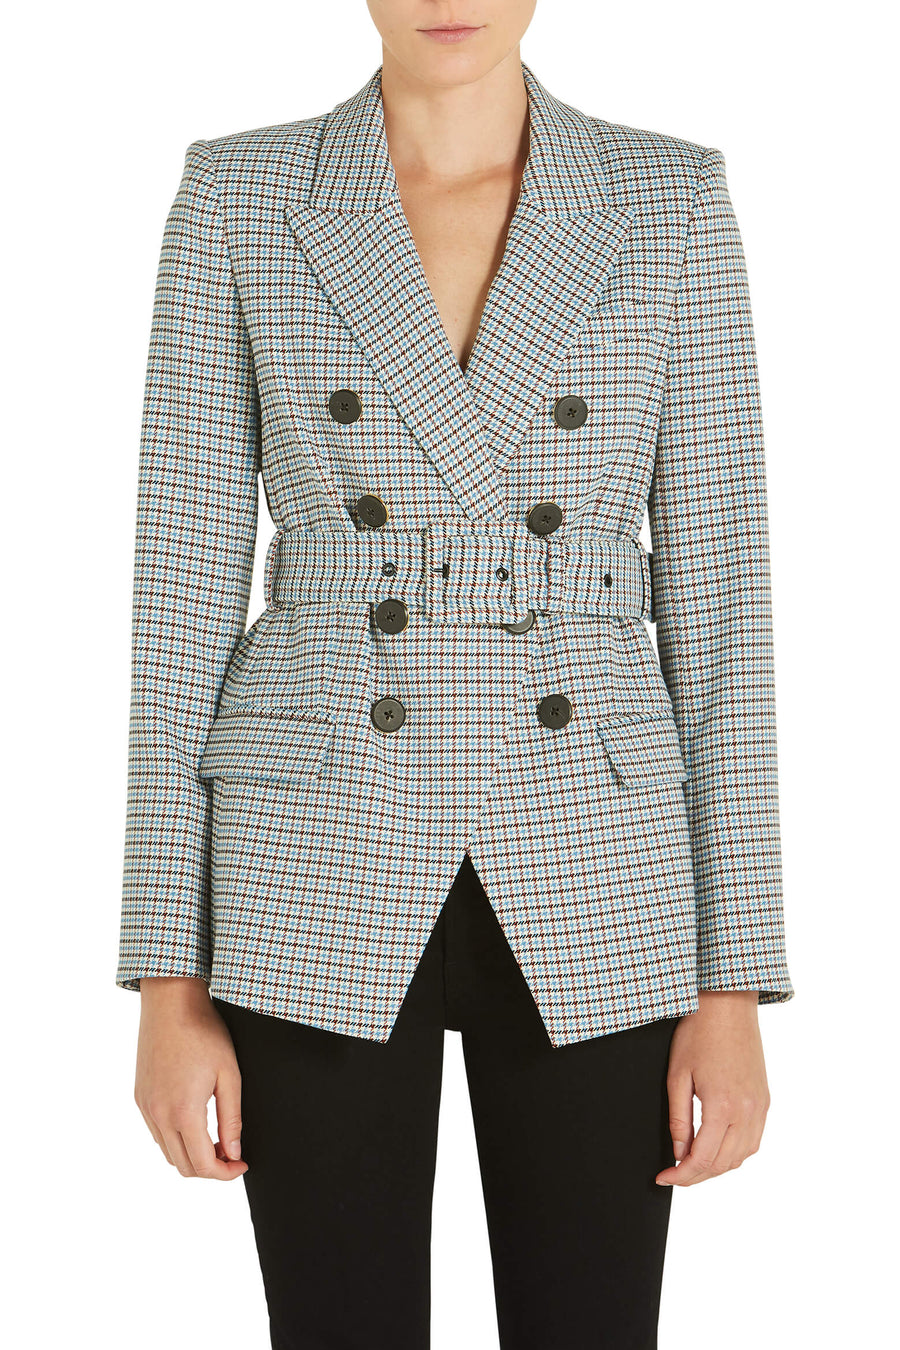 Veronica Beard Harvey Jacket from The New Trend